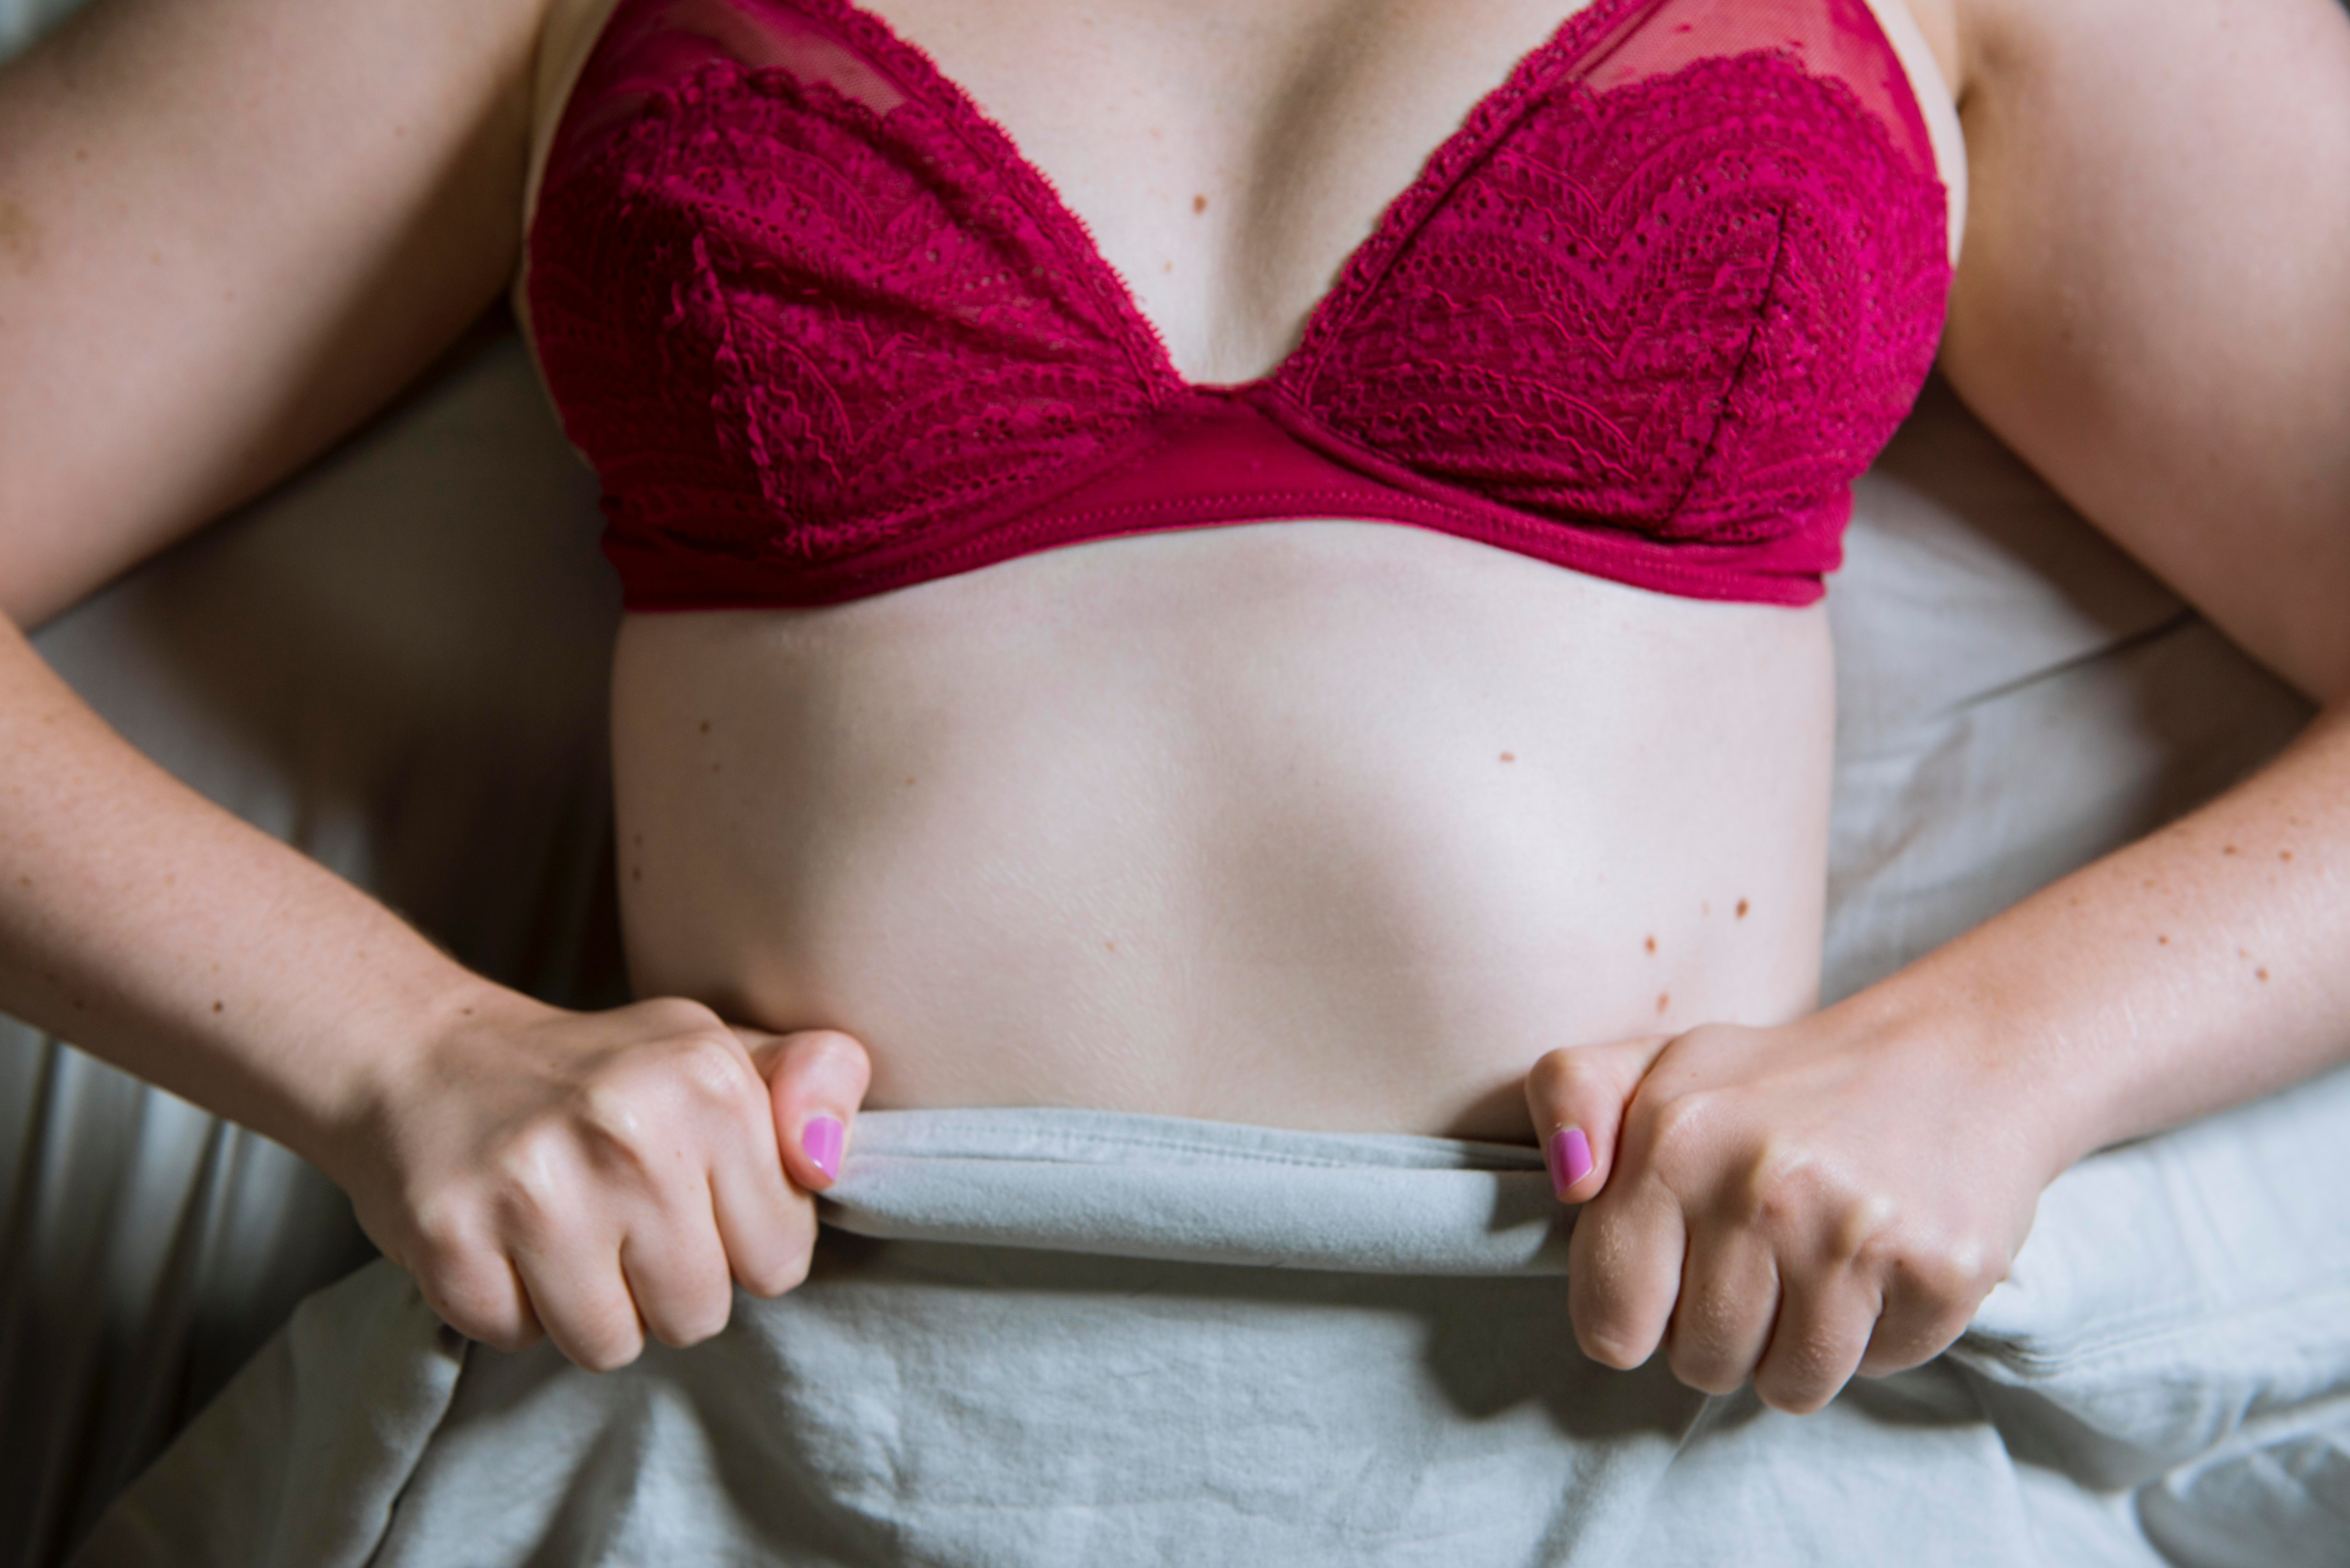 098af4efa 15 Interesting Physical Signs You re Wearing The Wrong Bra